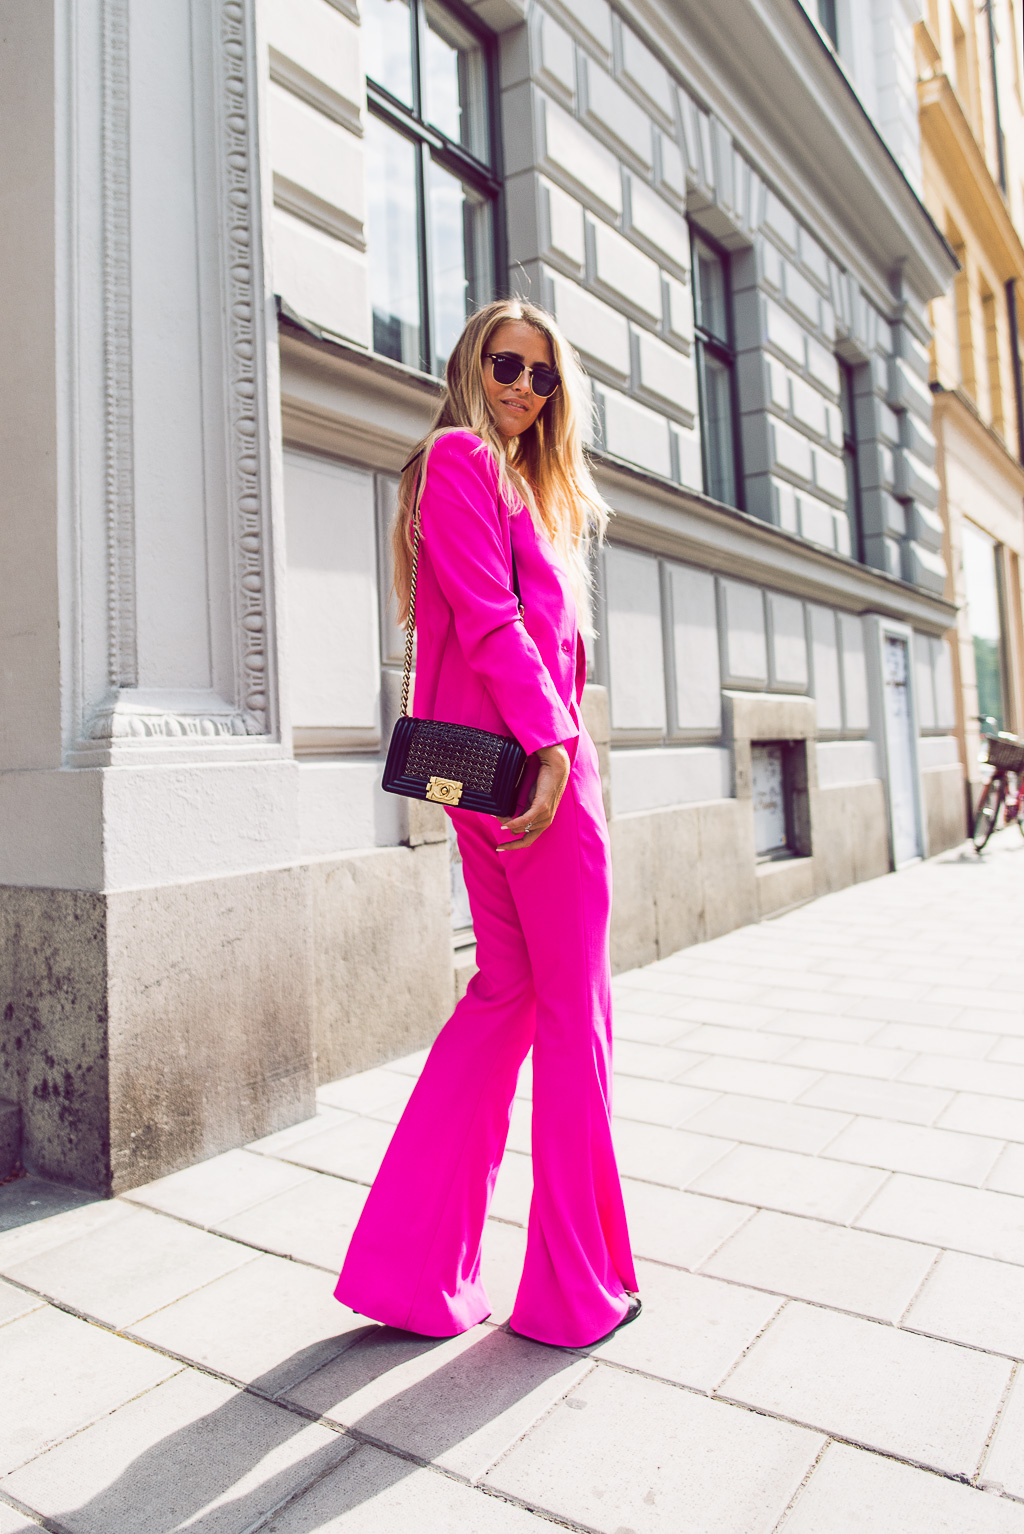 Janni Deler -  Pink Suit + Chanel Boy Bag -Stockholm Fashion Week, Street Style